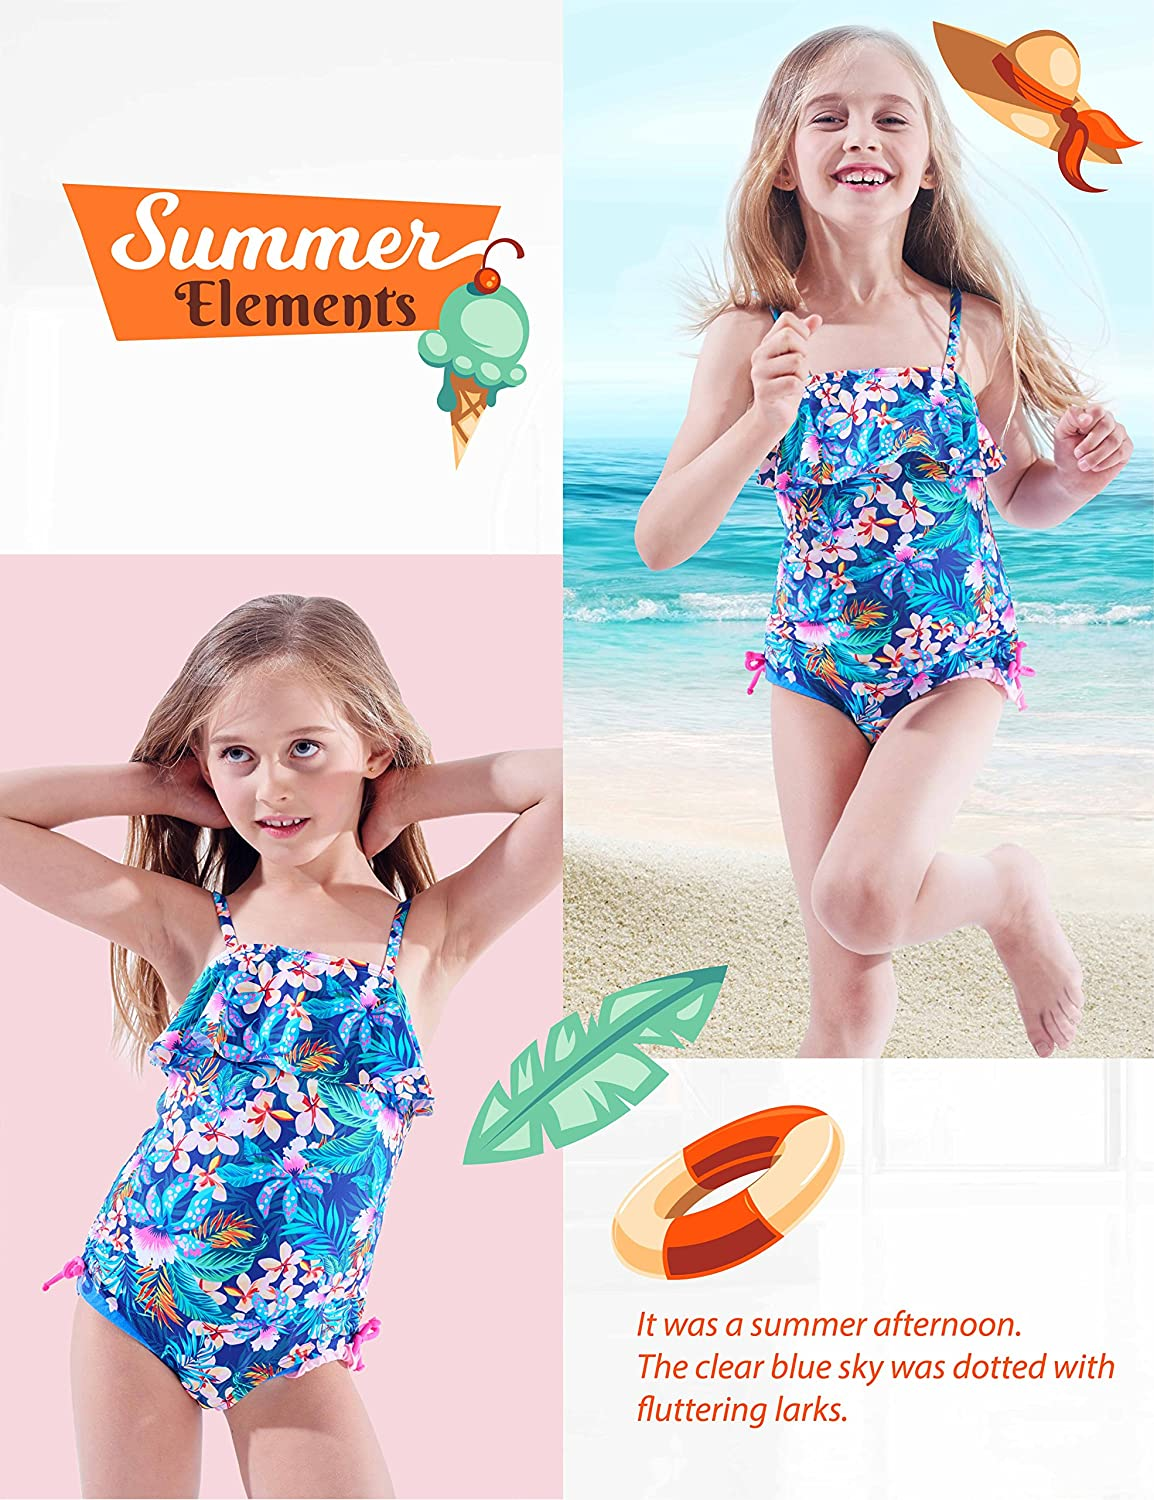 Floral Ruffle Tropical Swimsuit IKALI Girls One Piece Swimwear Beach Bathing Suit for Toddler